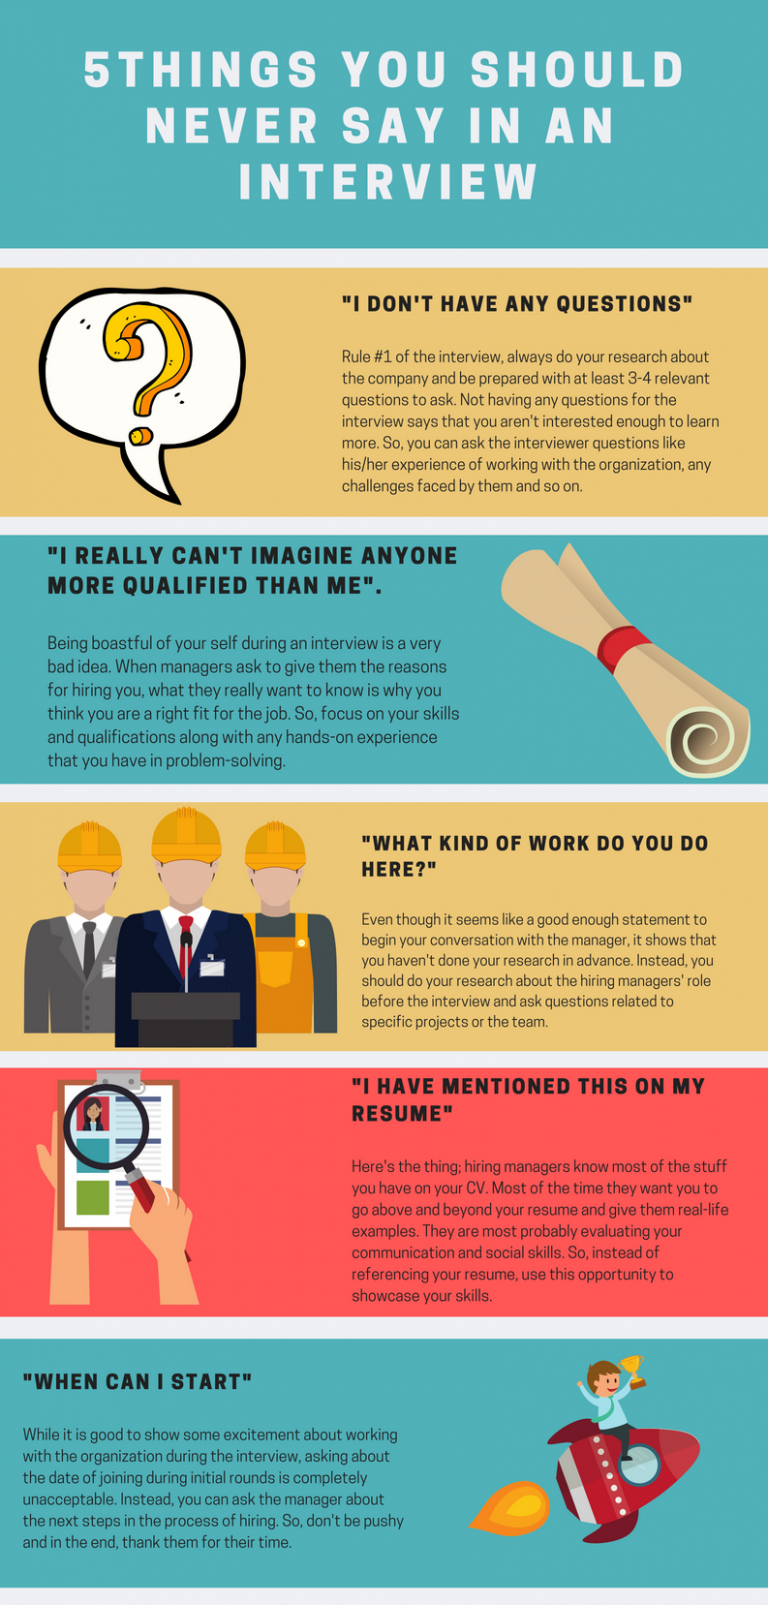 5 Things You Should Never Say in an Interview